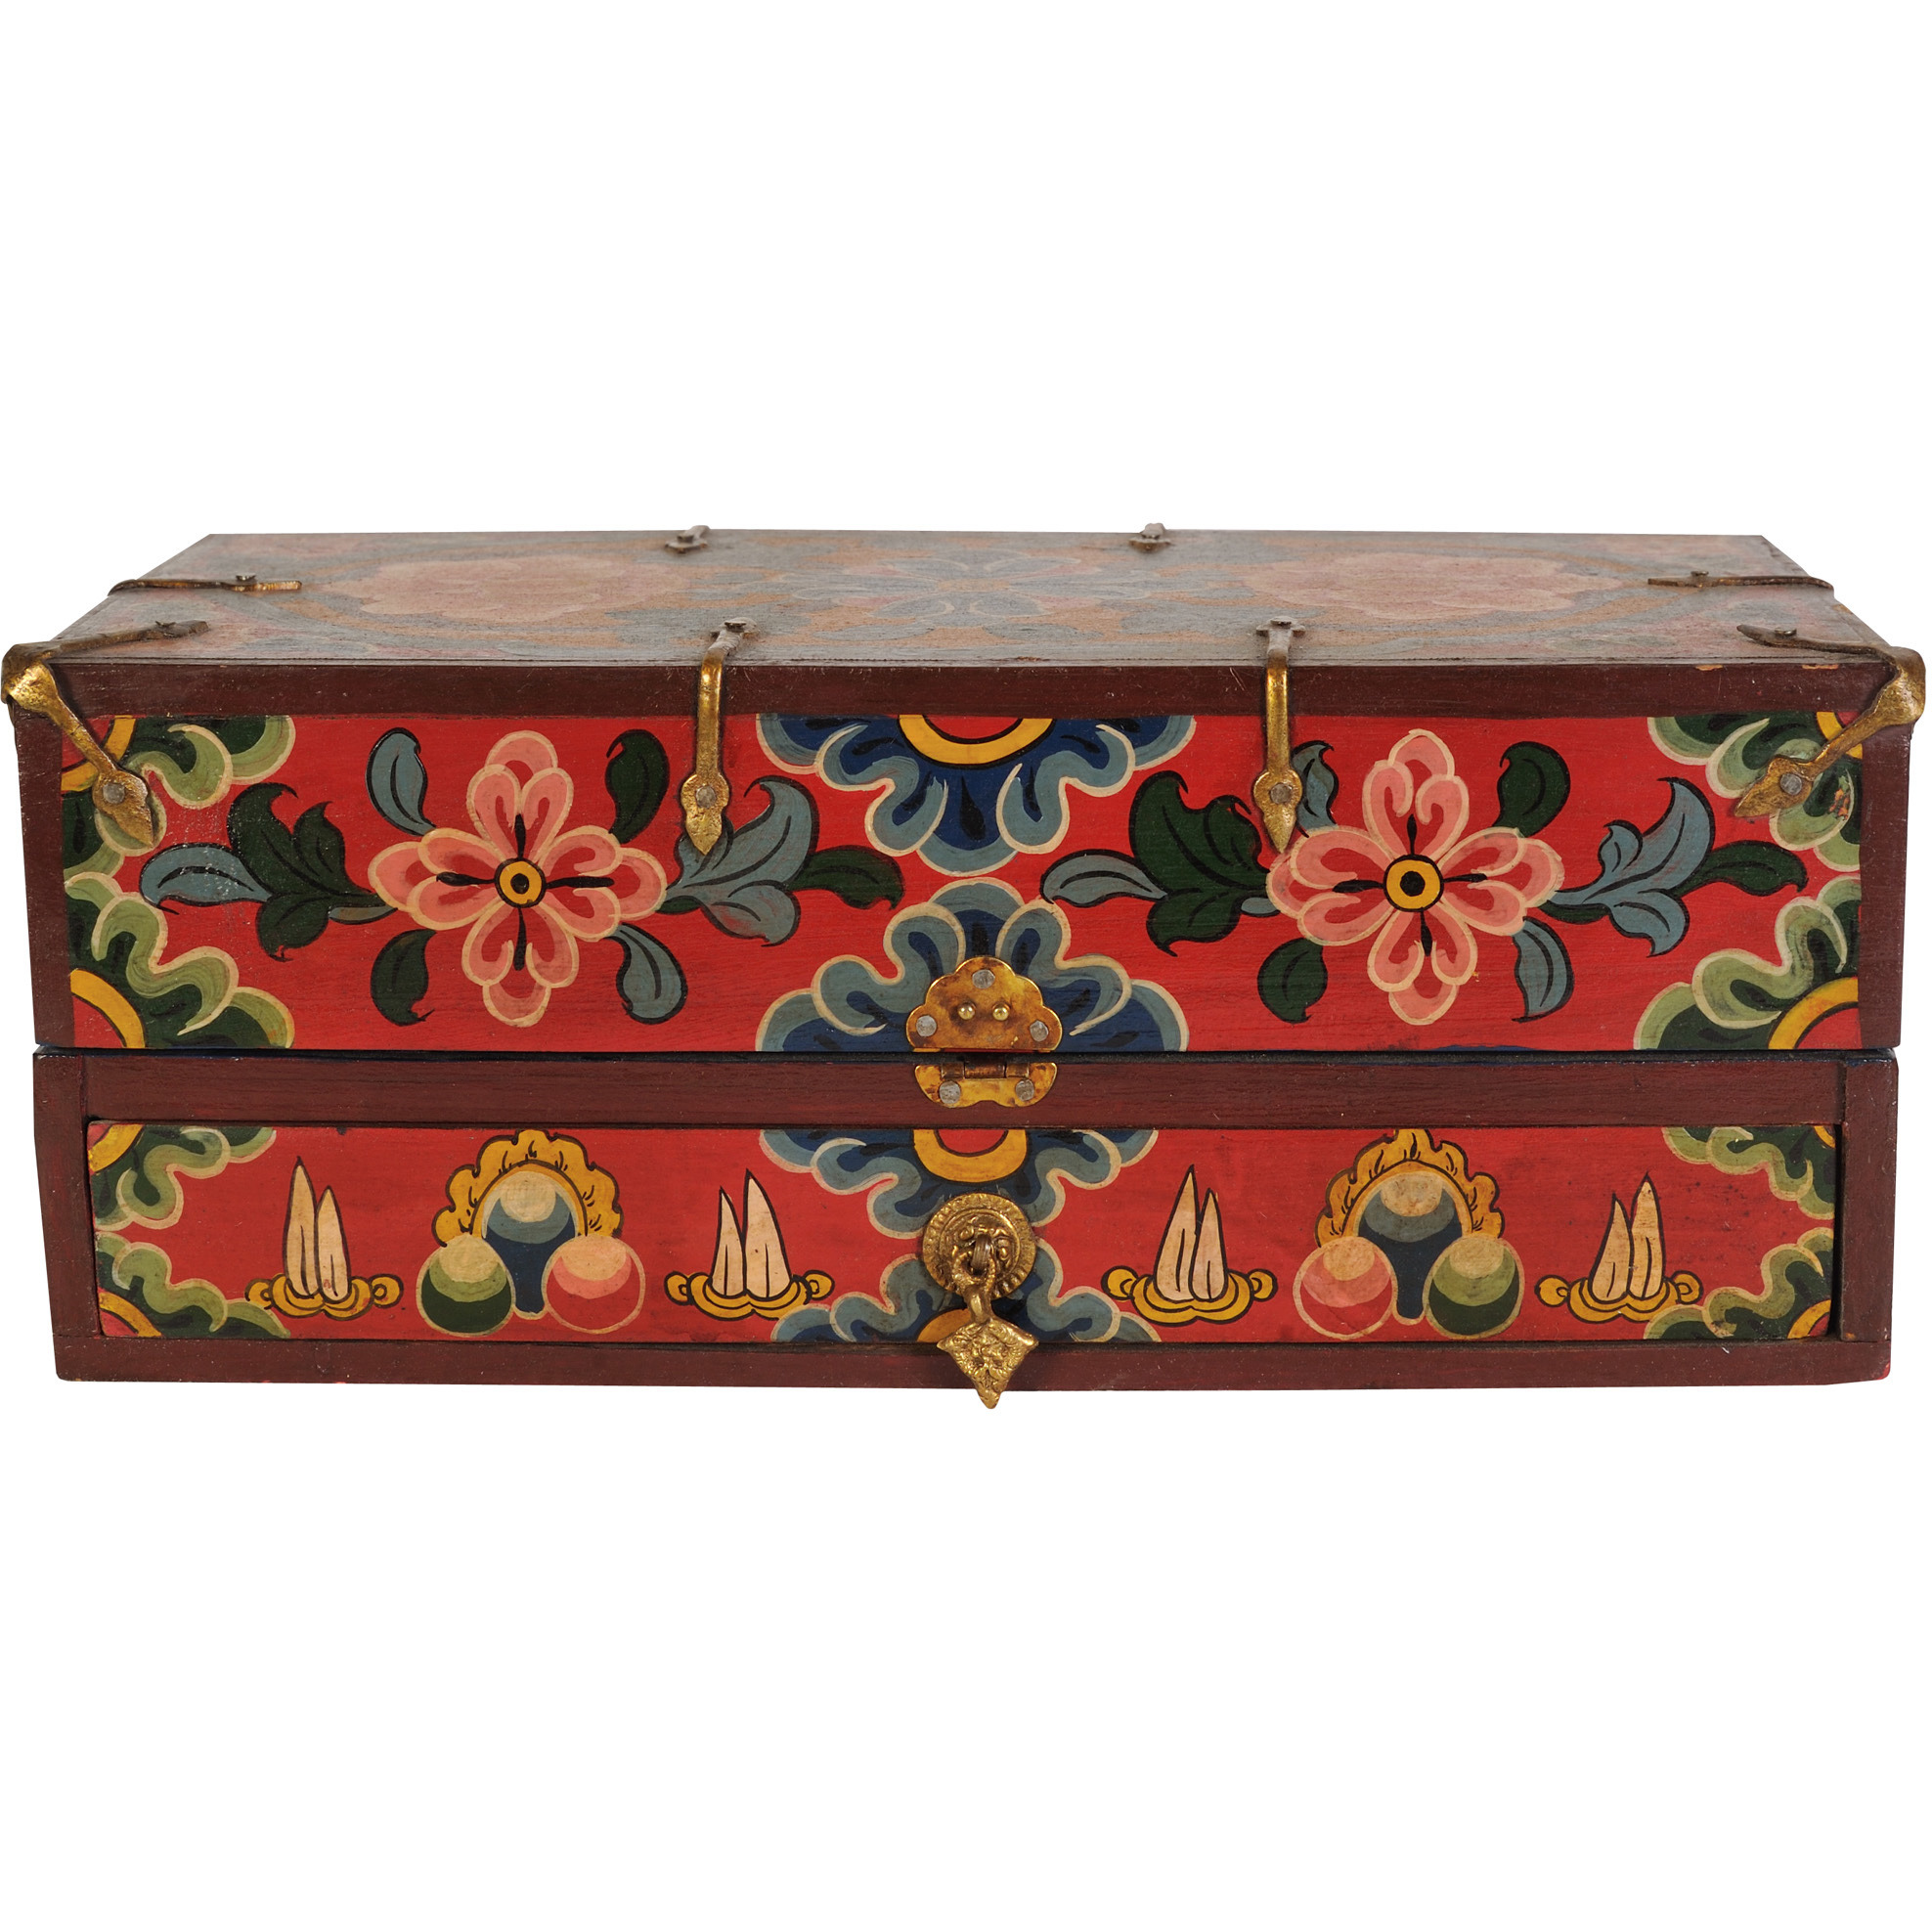 Tibetan Buddhist Ritual Box For Monastery